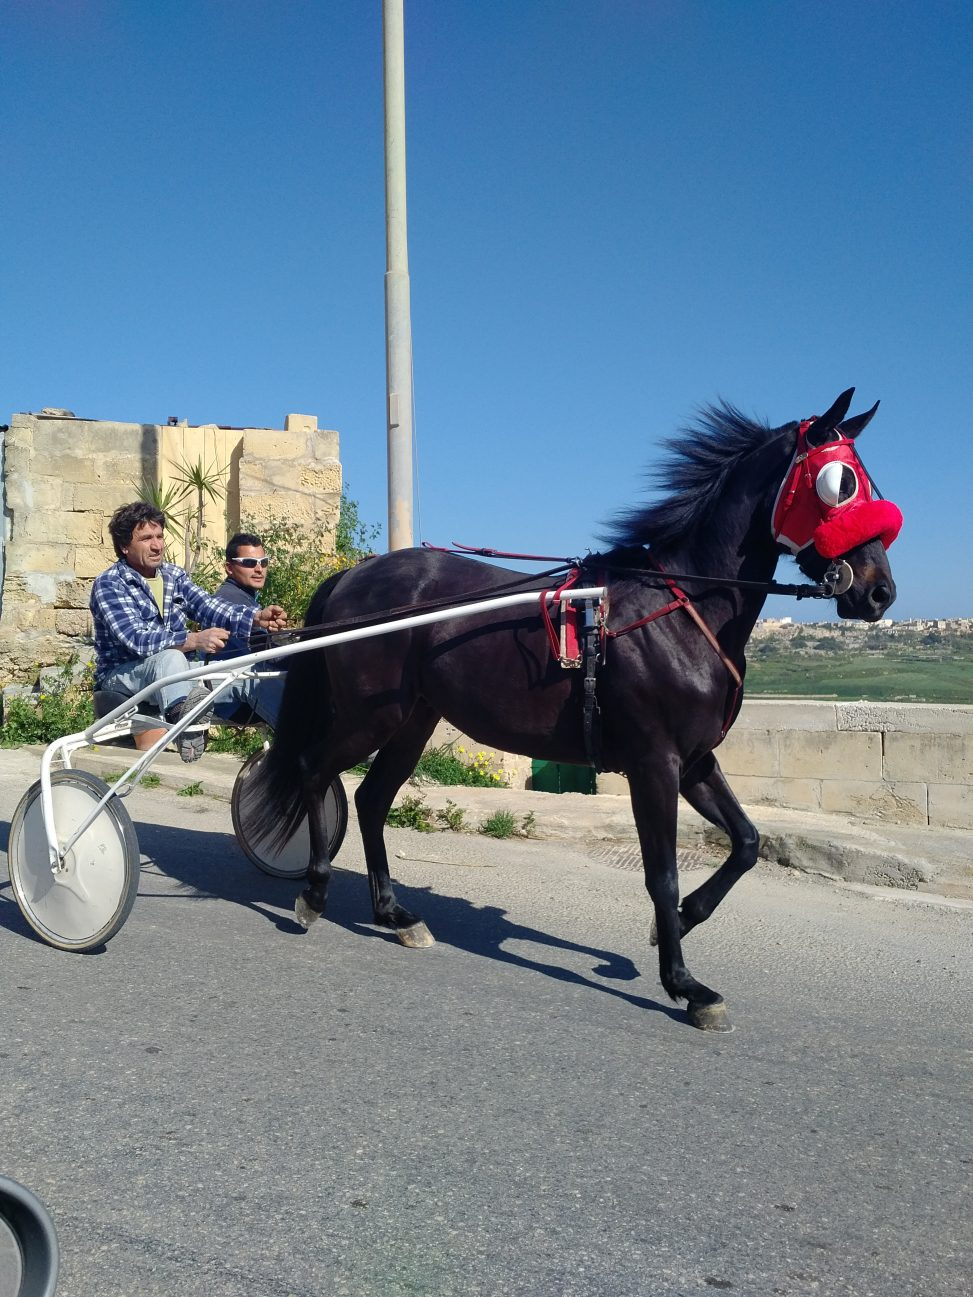 Trotting Horse in Gozo